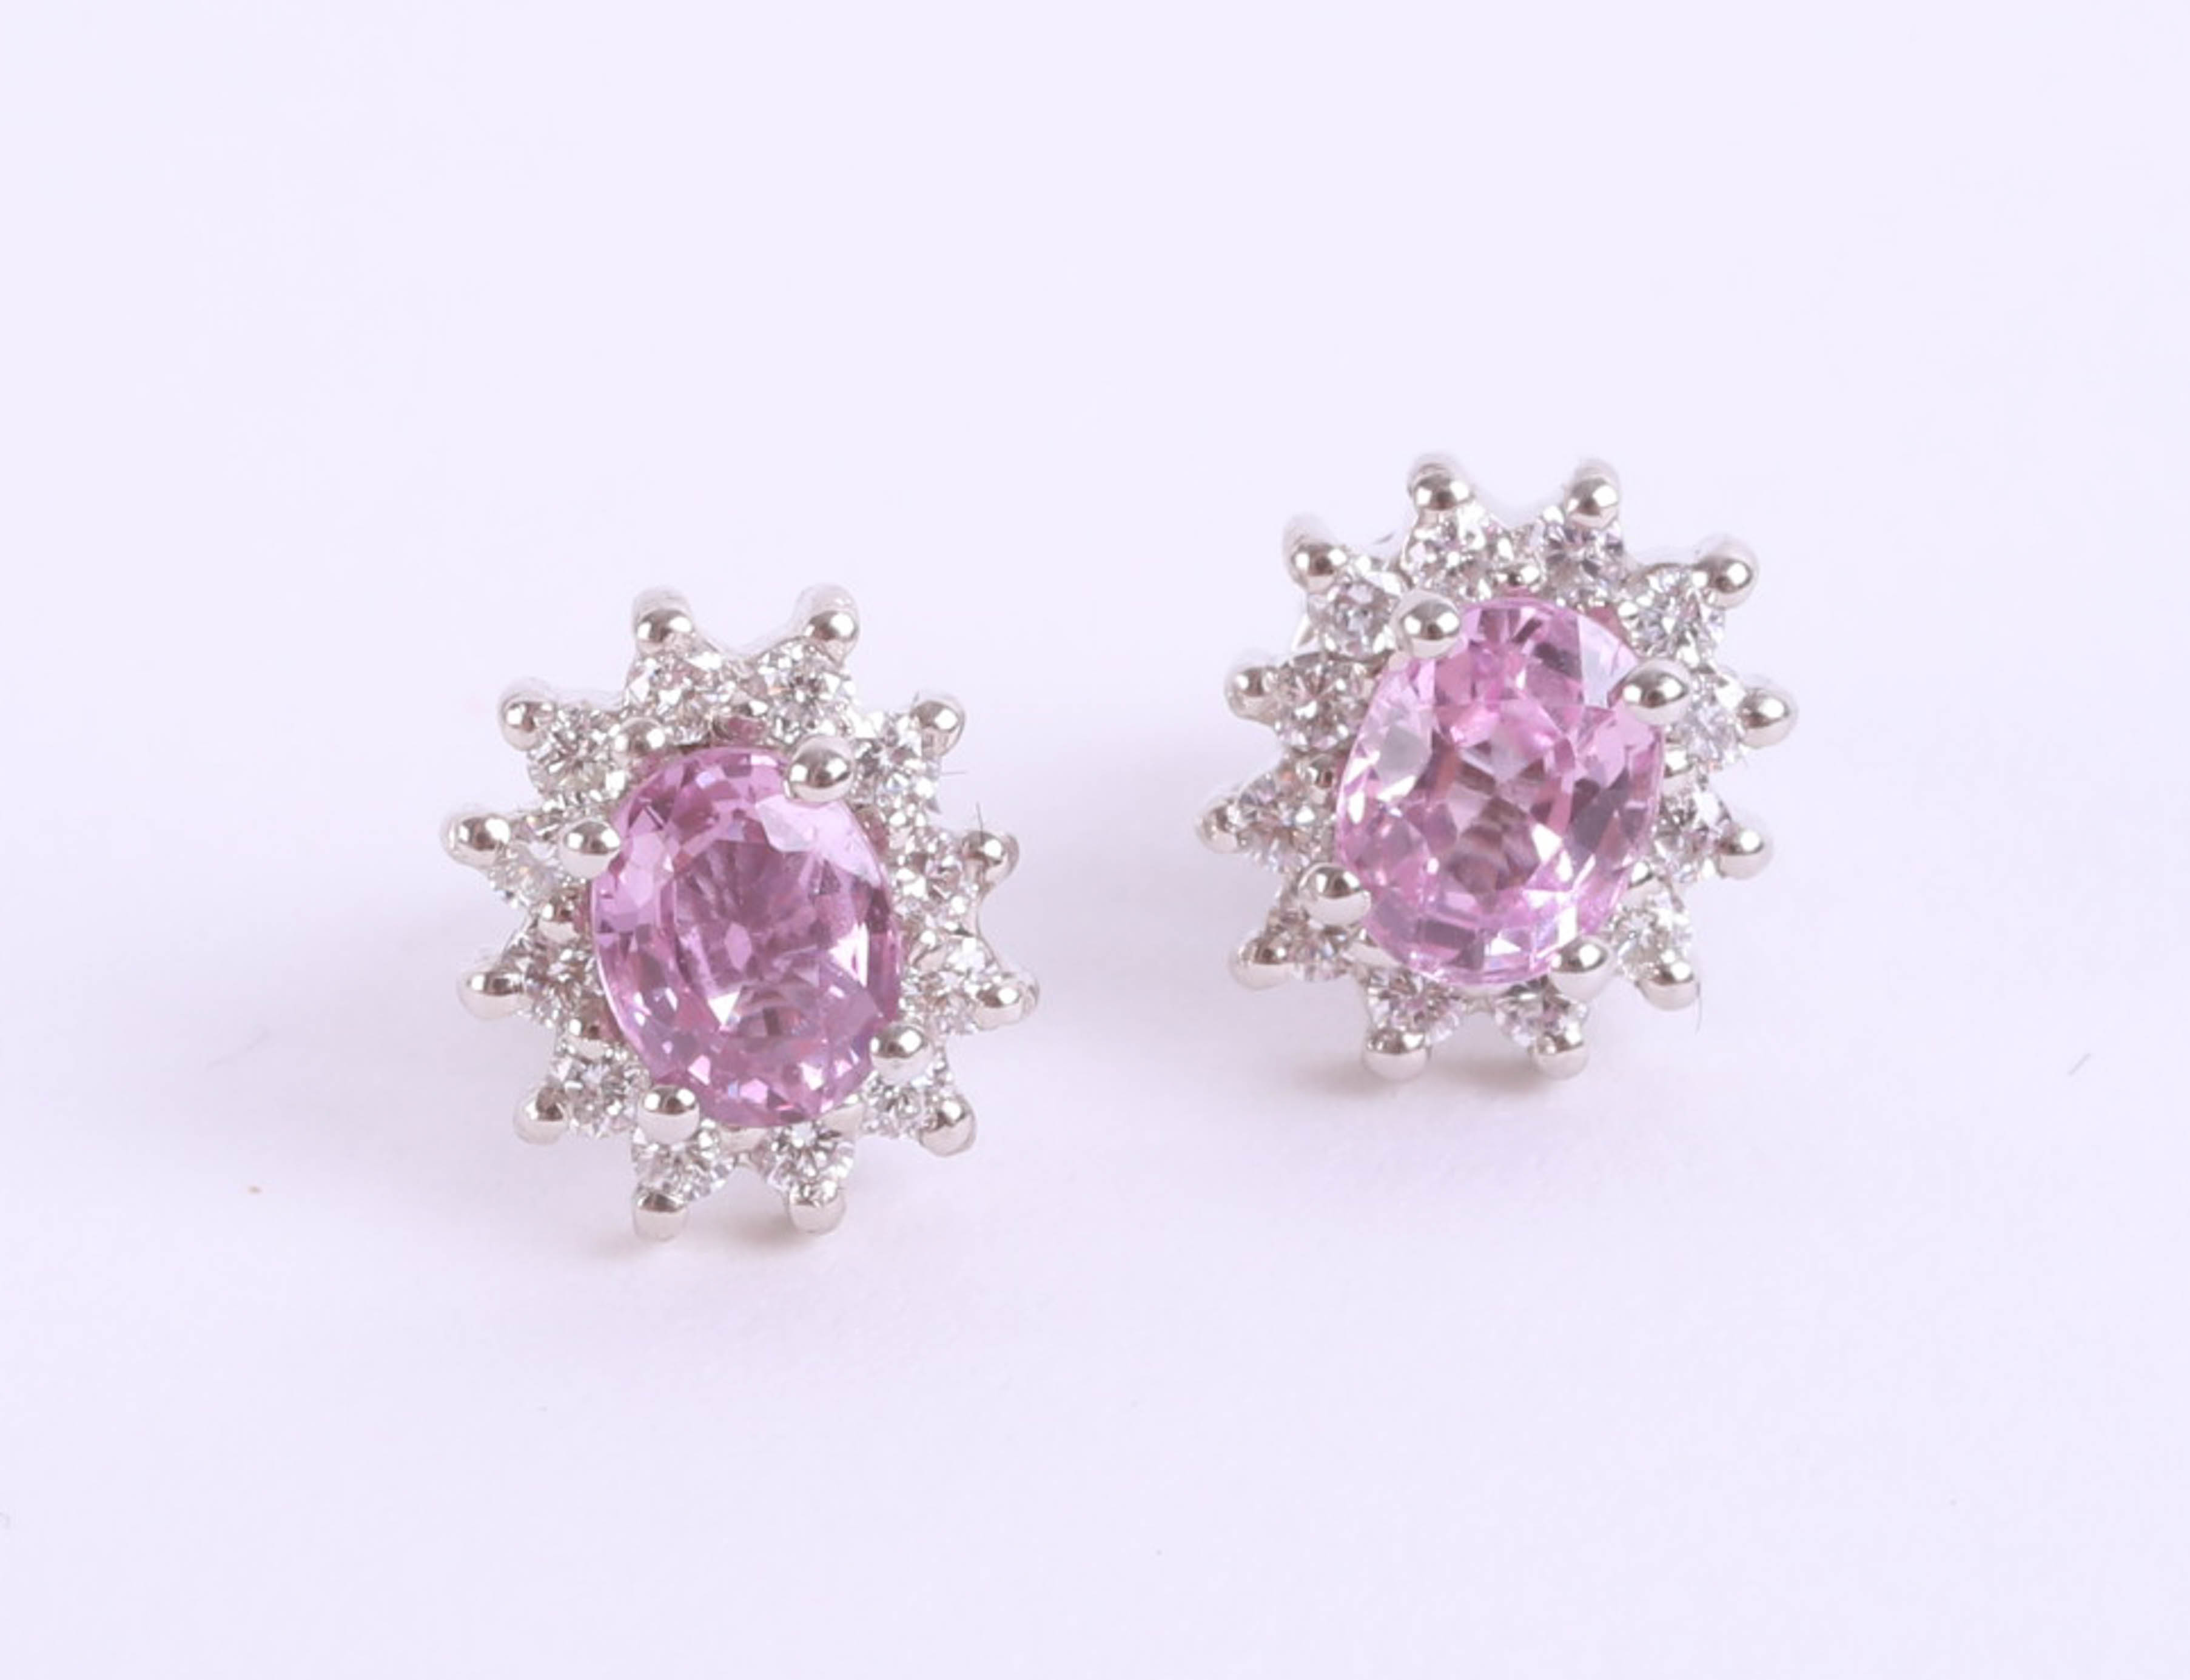 Lot 038 - A pair of 18ct pink sapphire and diamond cluster earrings, in white gold.